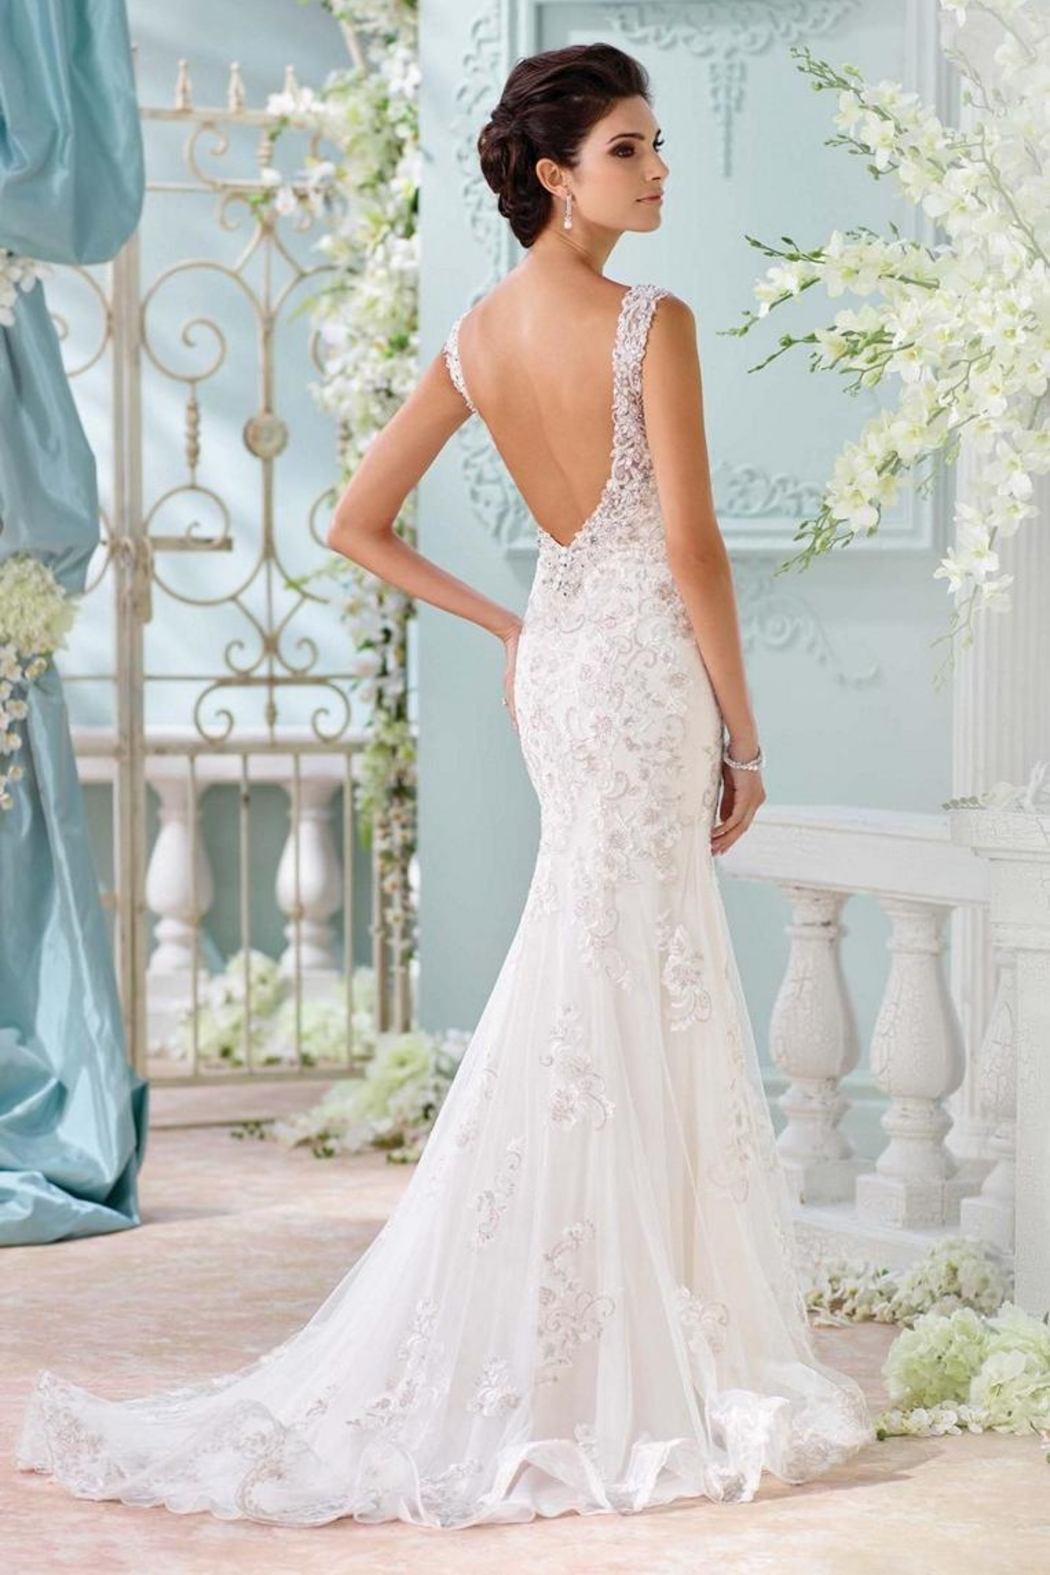 David Tutera For Mon Cheri Backless Wedding Gown From Ohio By